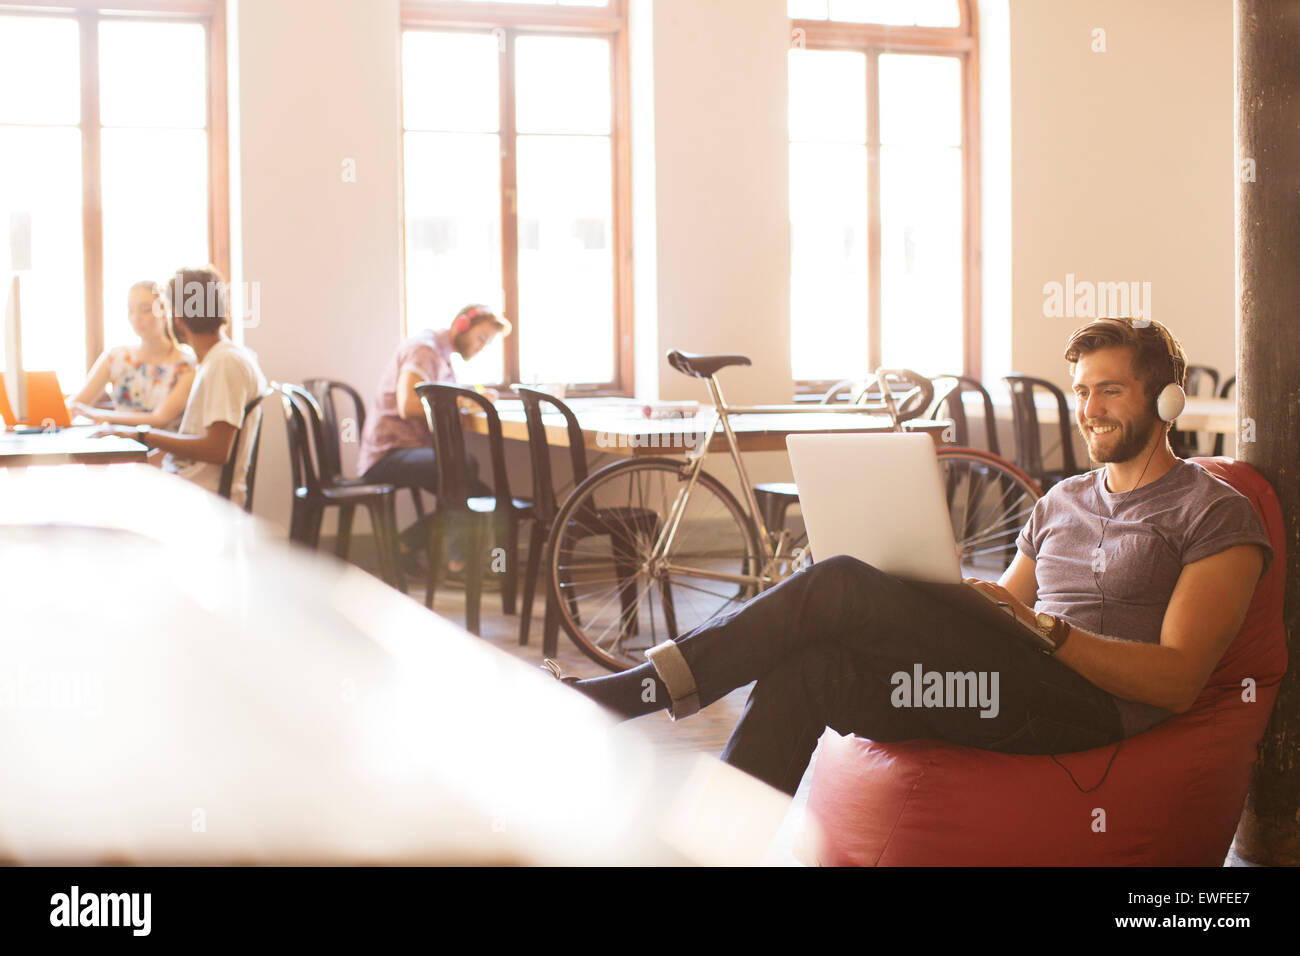 Smiling casual businessman wearing headphones and working at laptop on bean bag chair in office - Stock Image